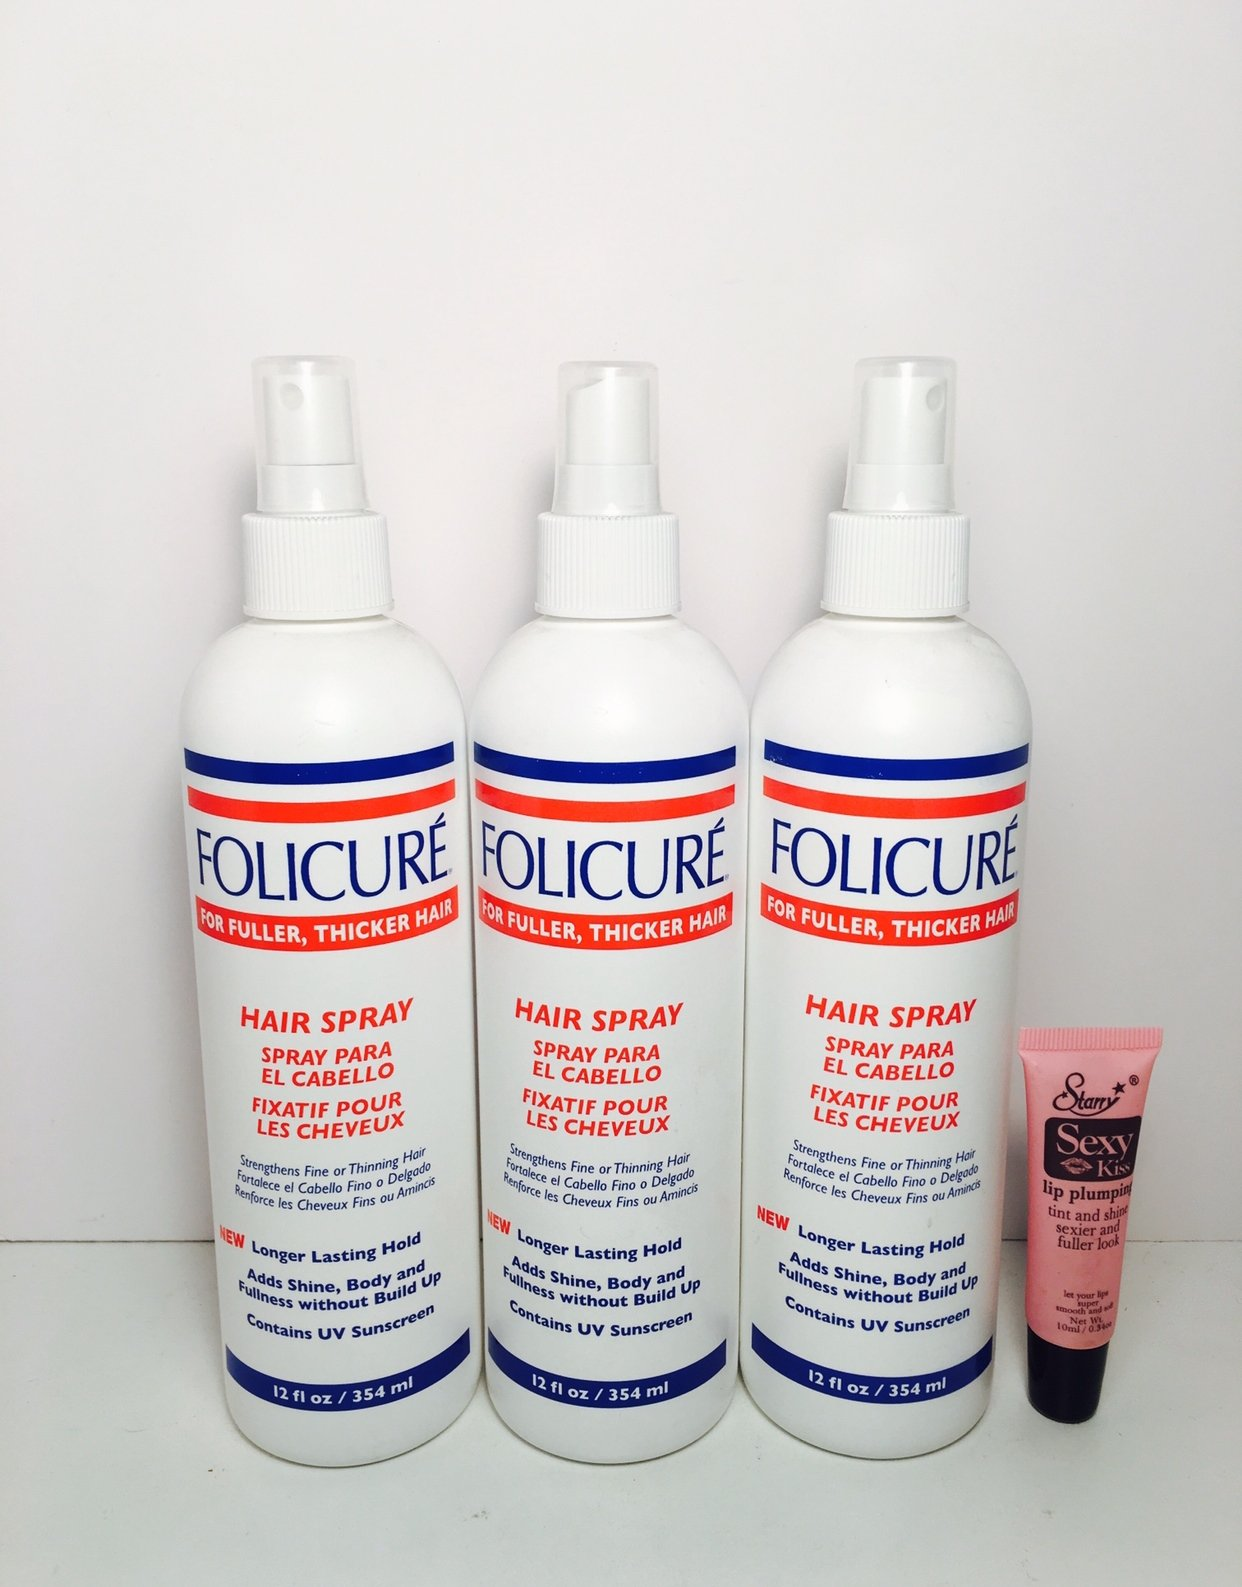 Folicure Hairspray 12 oz. Pump (3-Pack) with Free Nail File